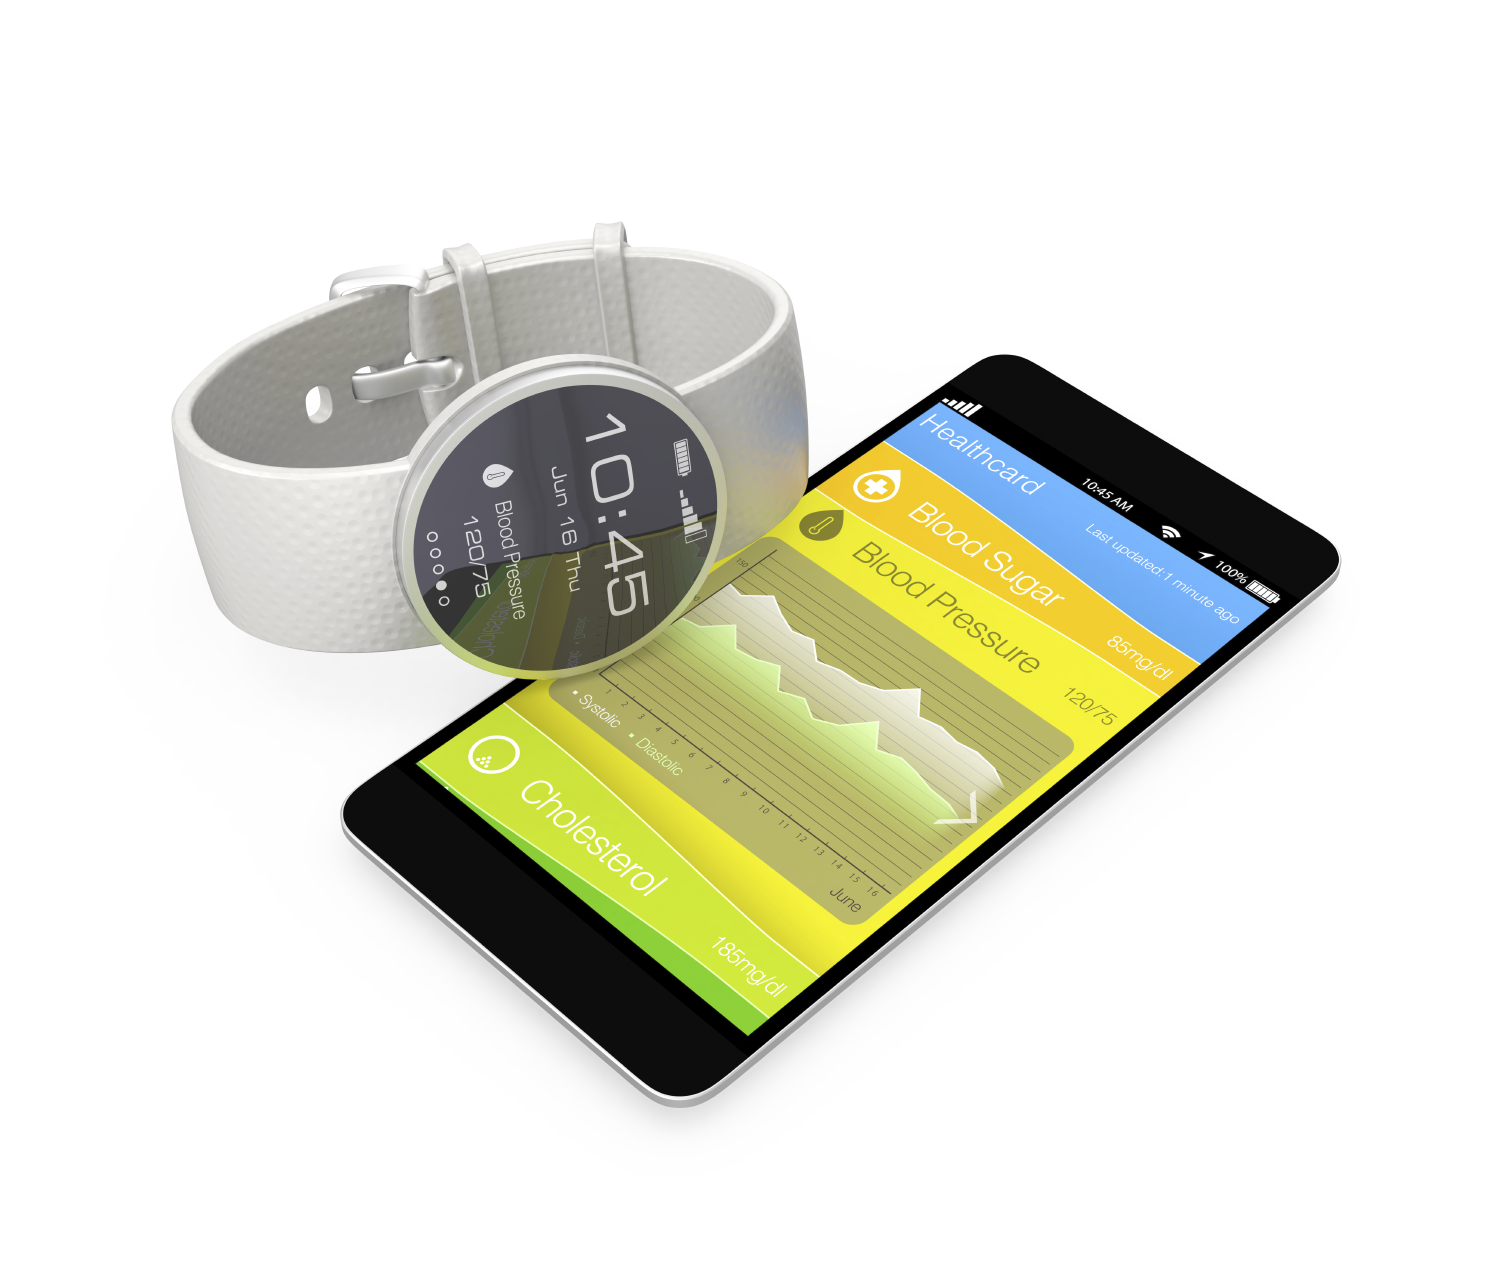 Smart watch connected to a phone